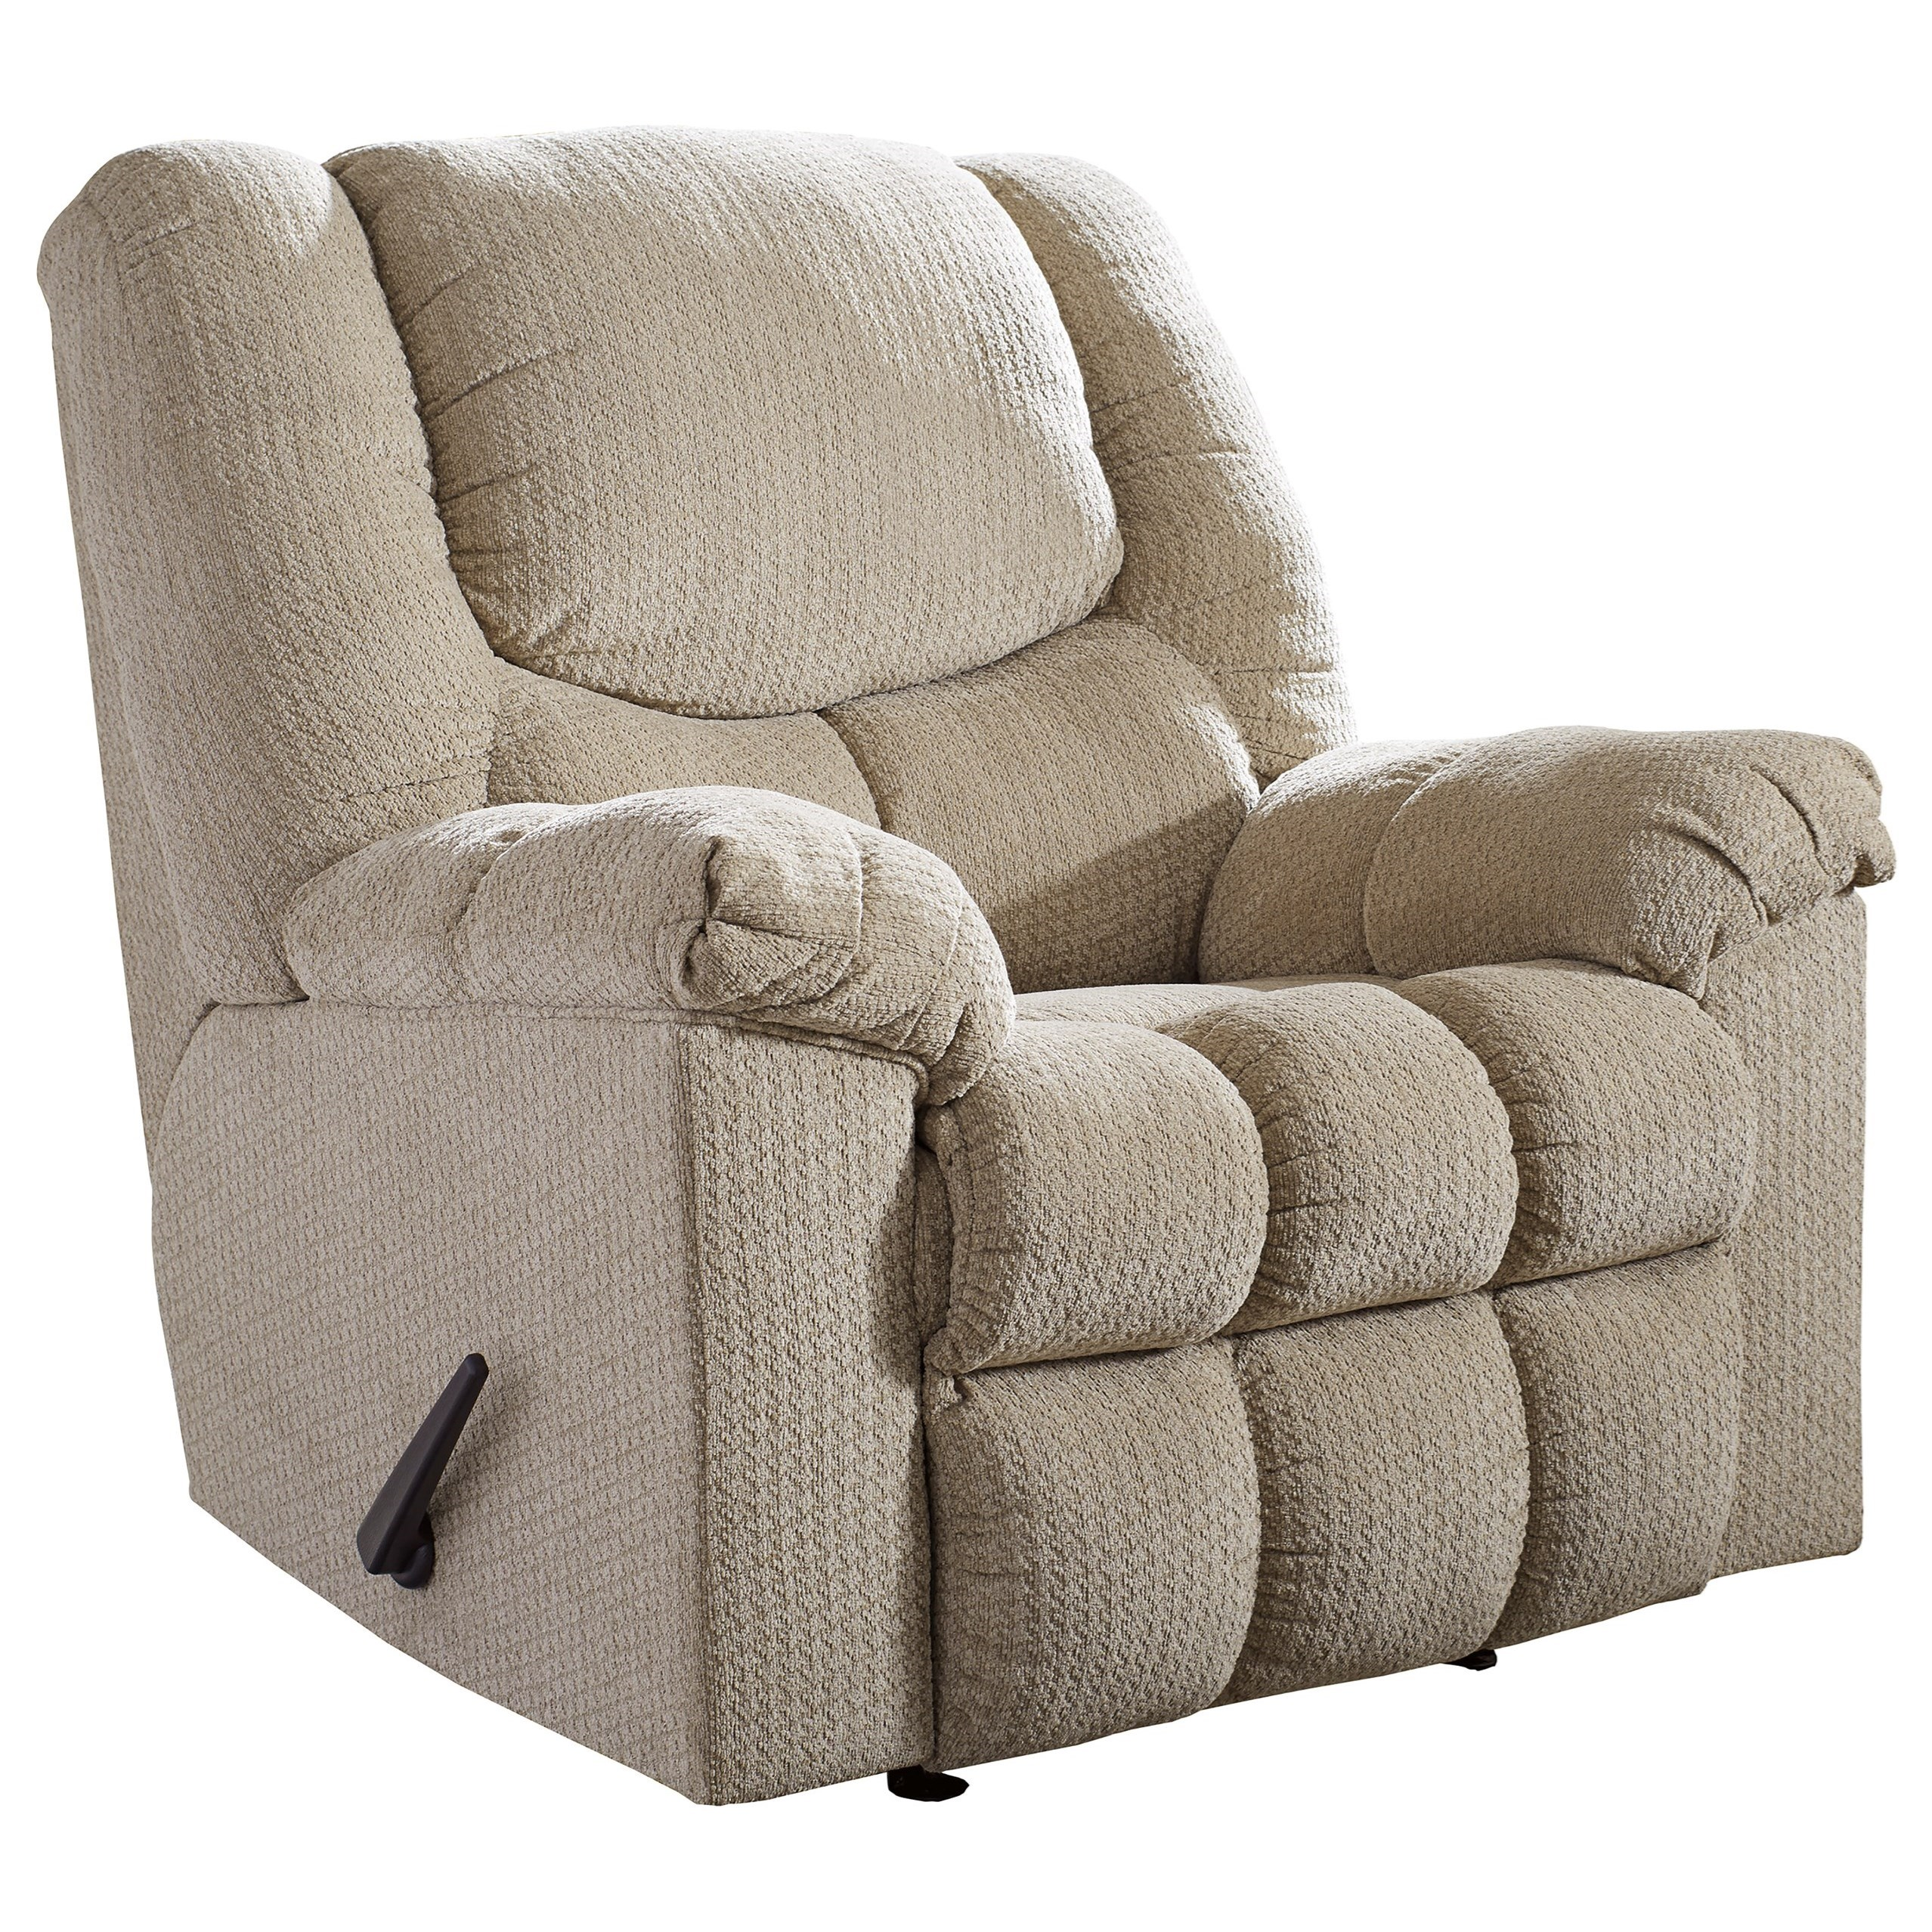 Signature Design by Ashley Turboprop Rocker Recliner - Item Number: 5000525